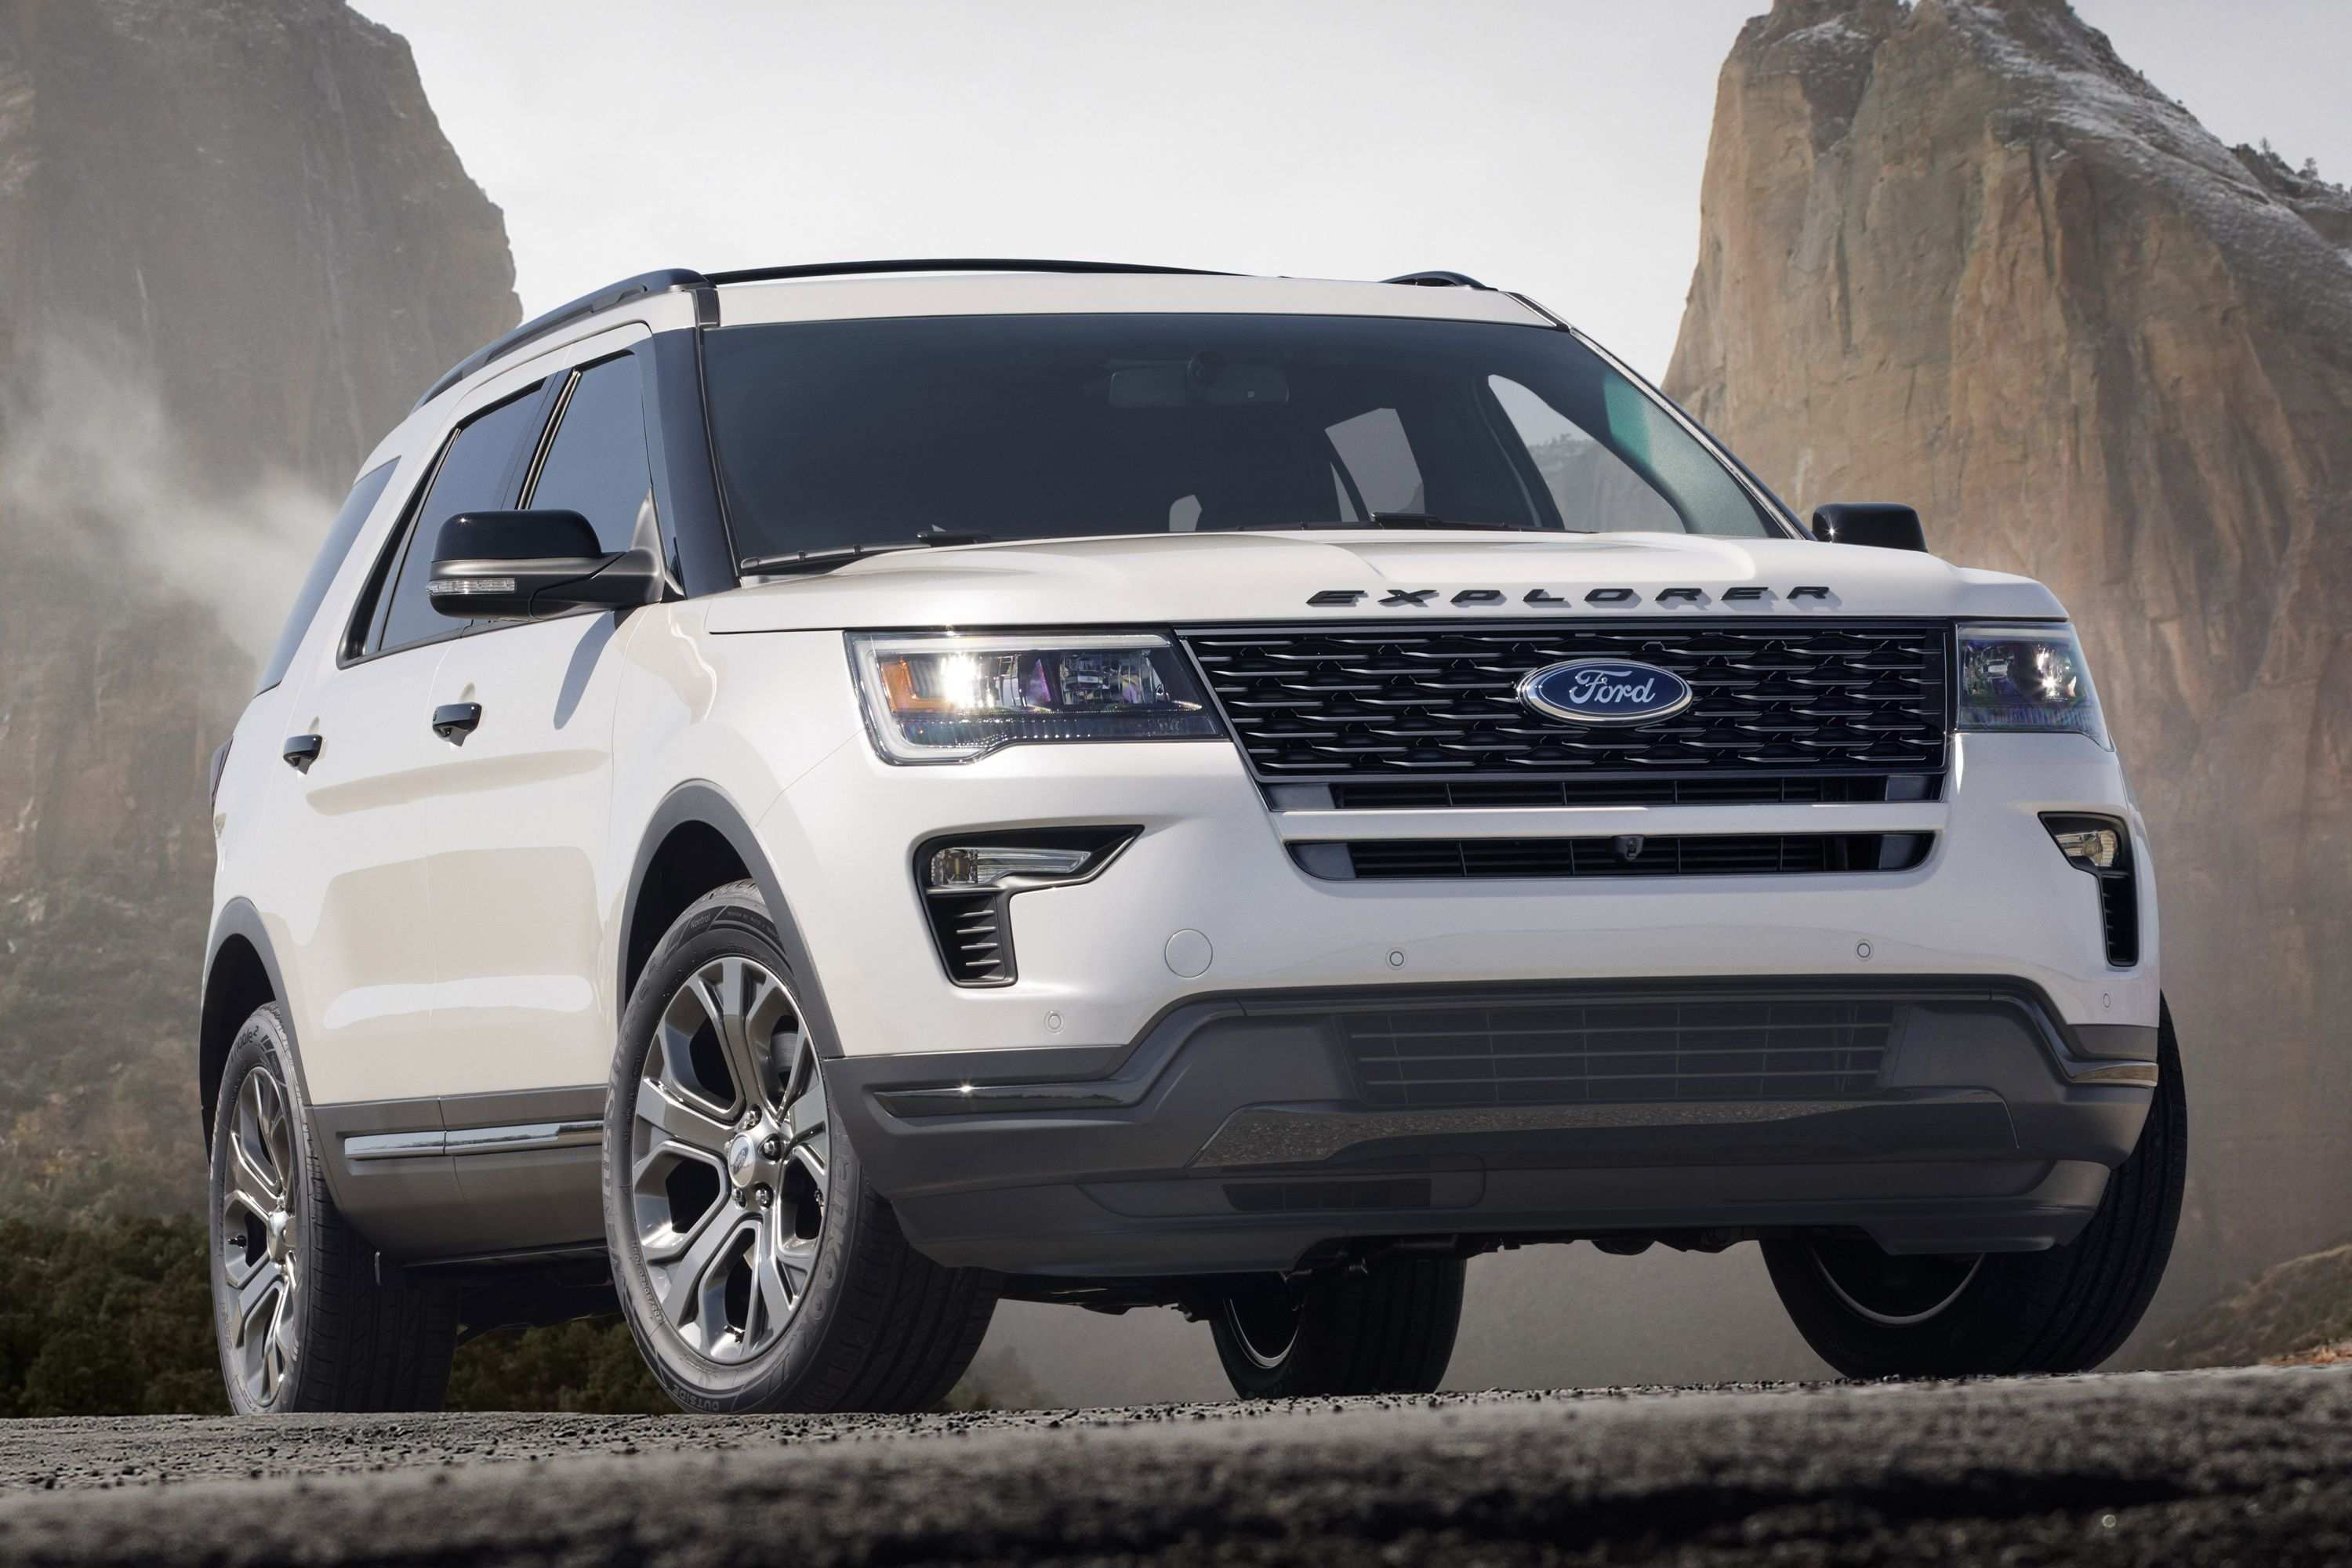 81 All New 2020 Ford Explorer Sports Prices for 2020 Ford Explorer Sports